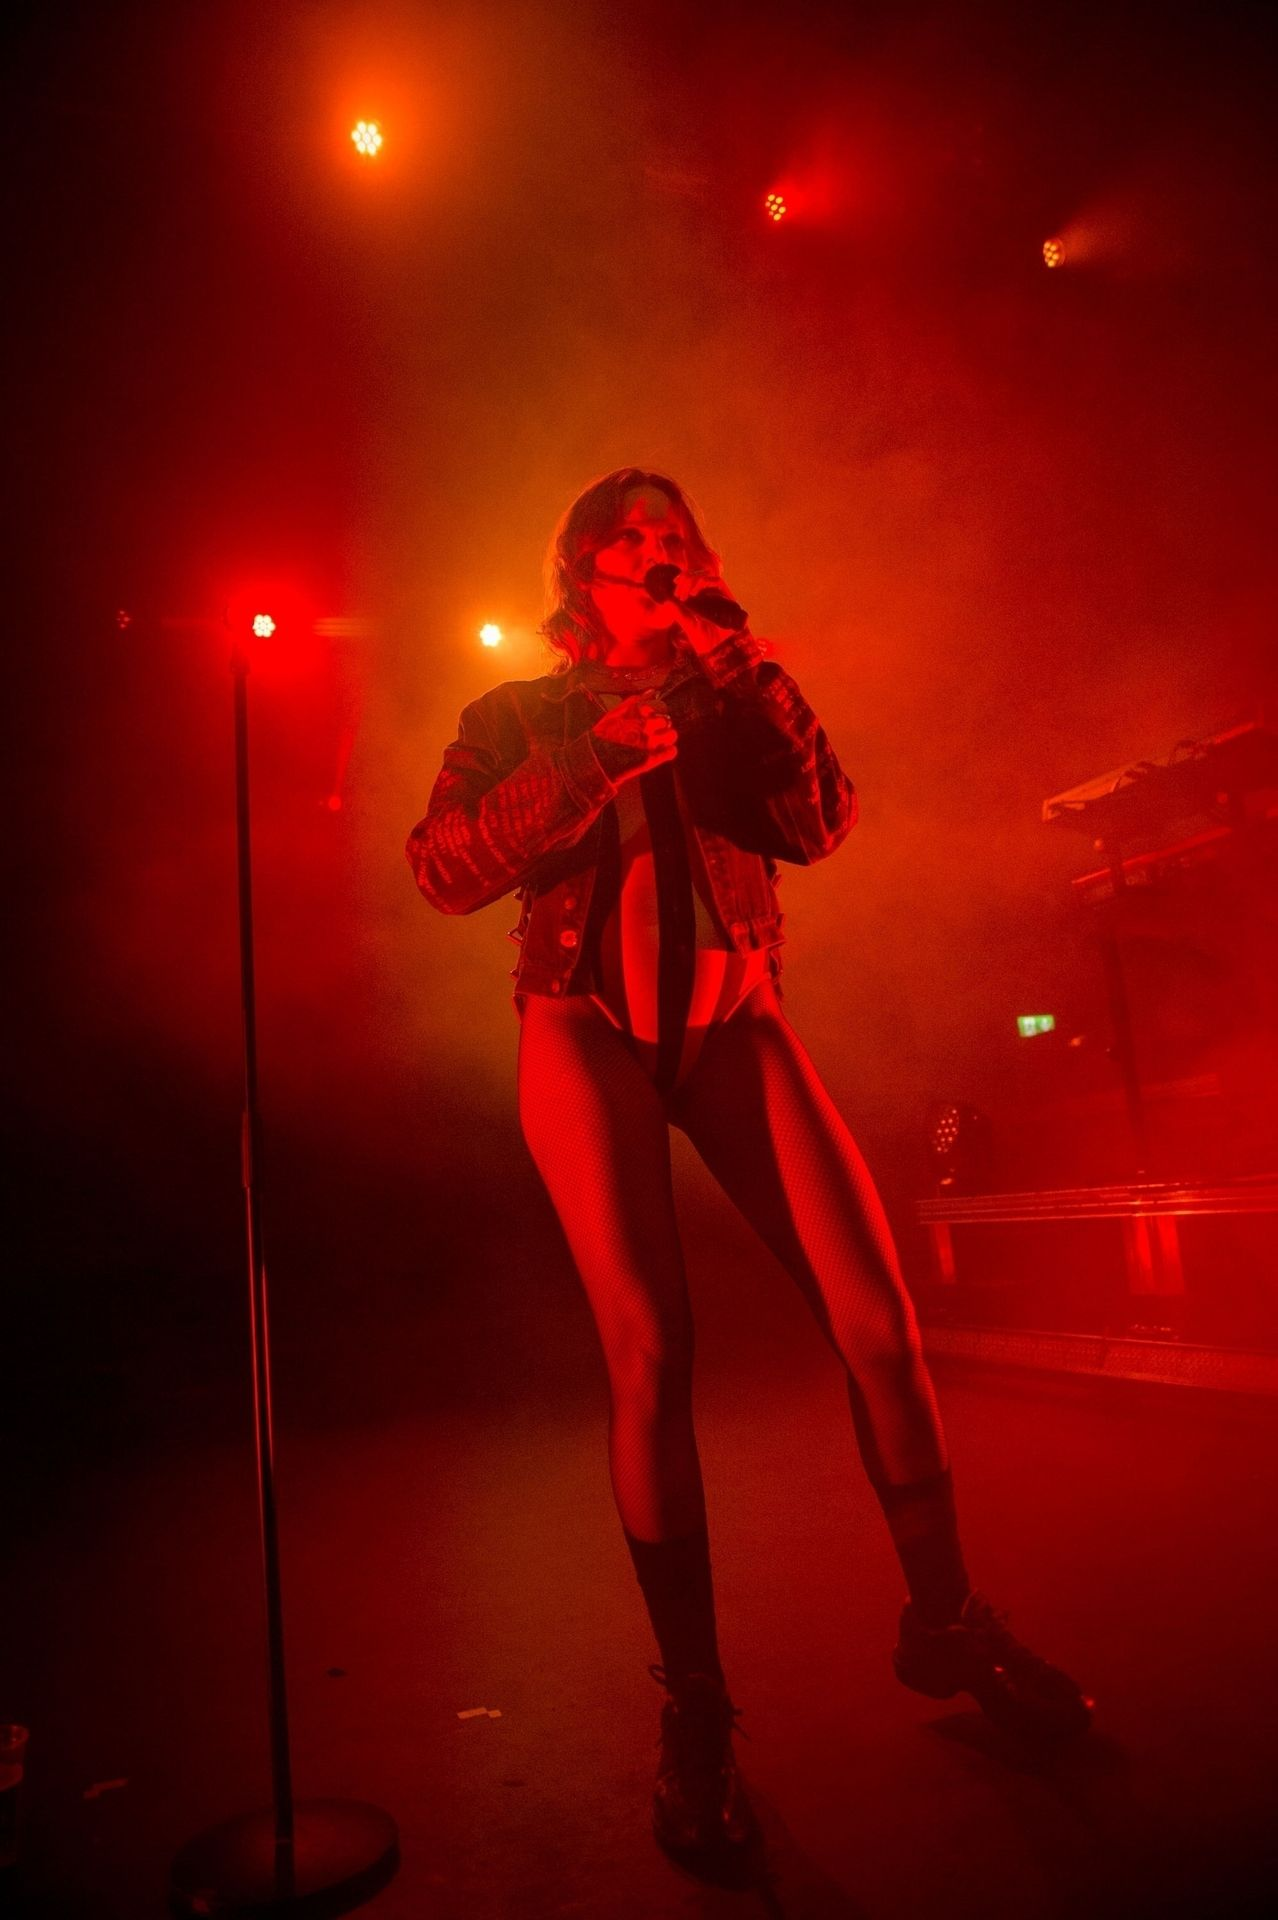 Tove Lo Is In Concert Performing Live At O2 Forum Kentish Town In London 0042